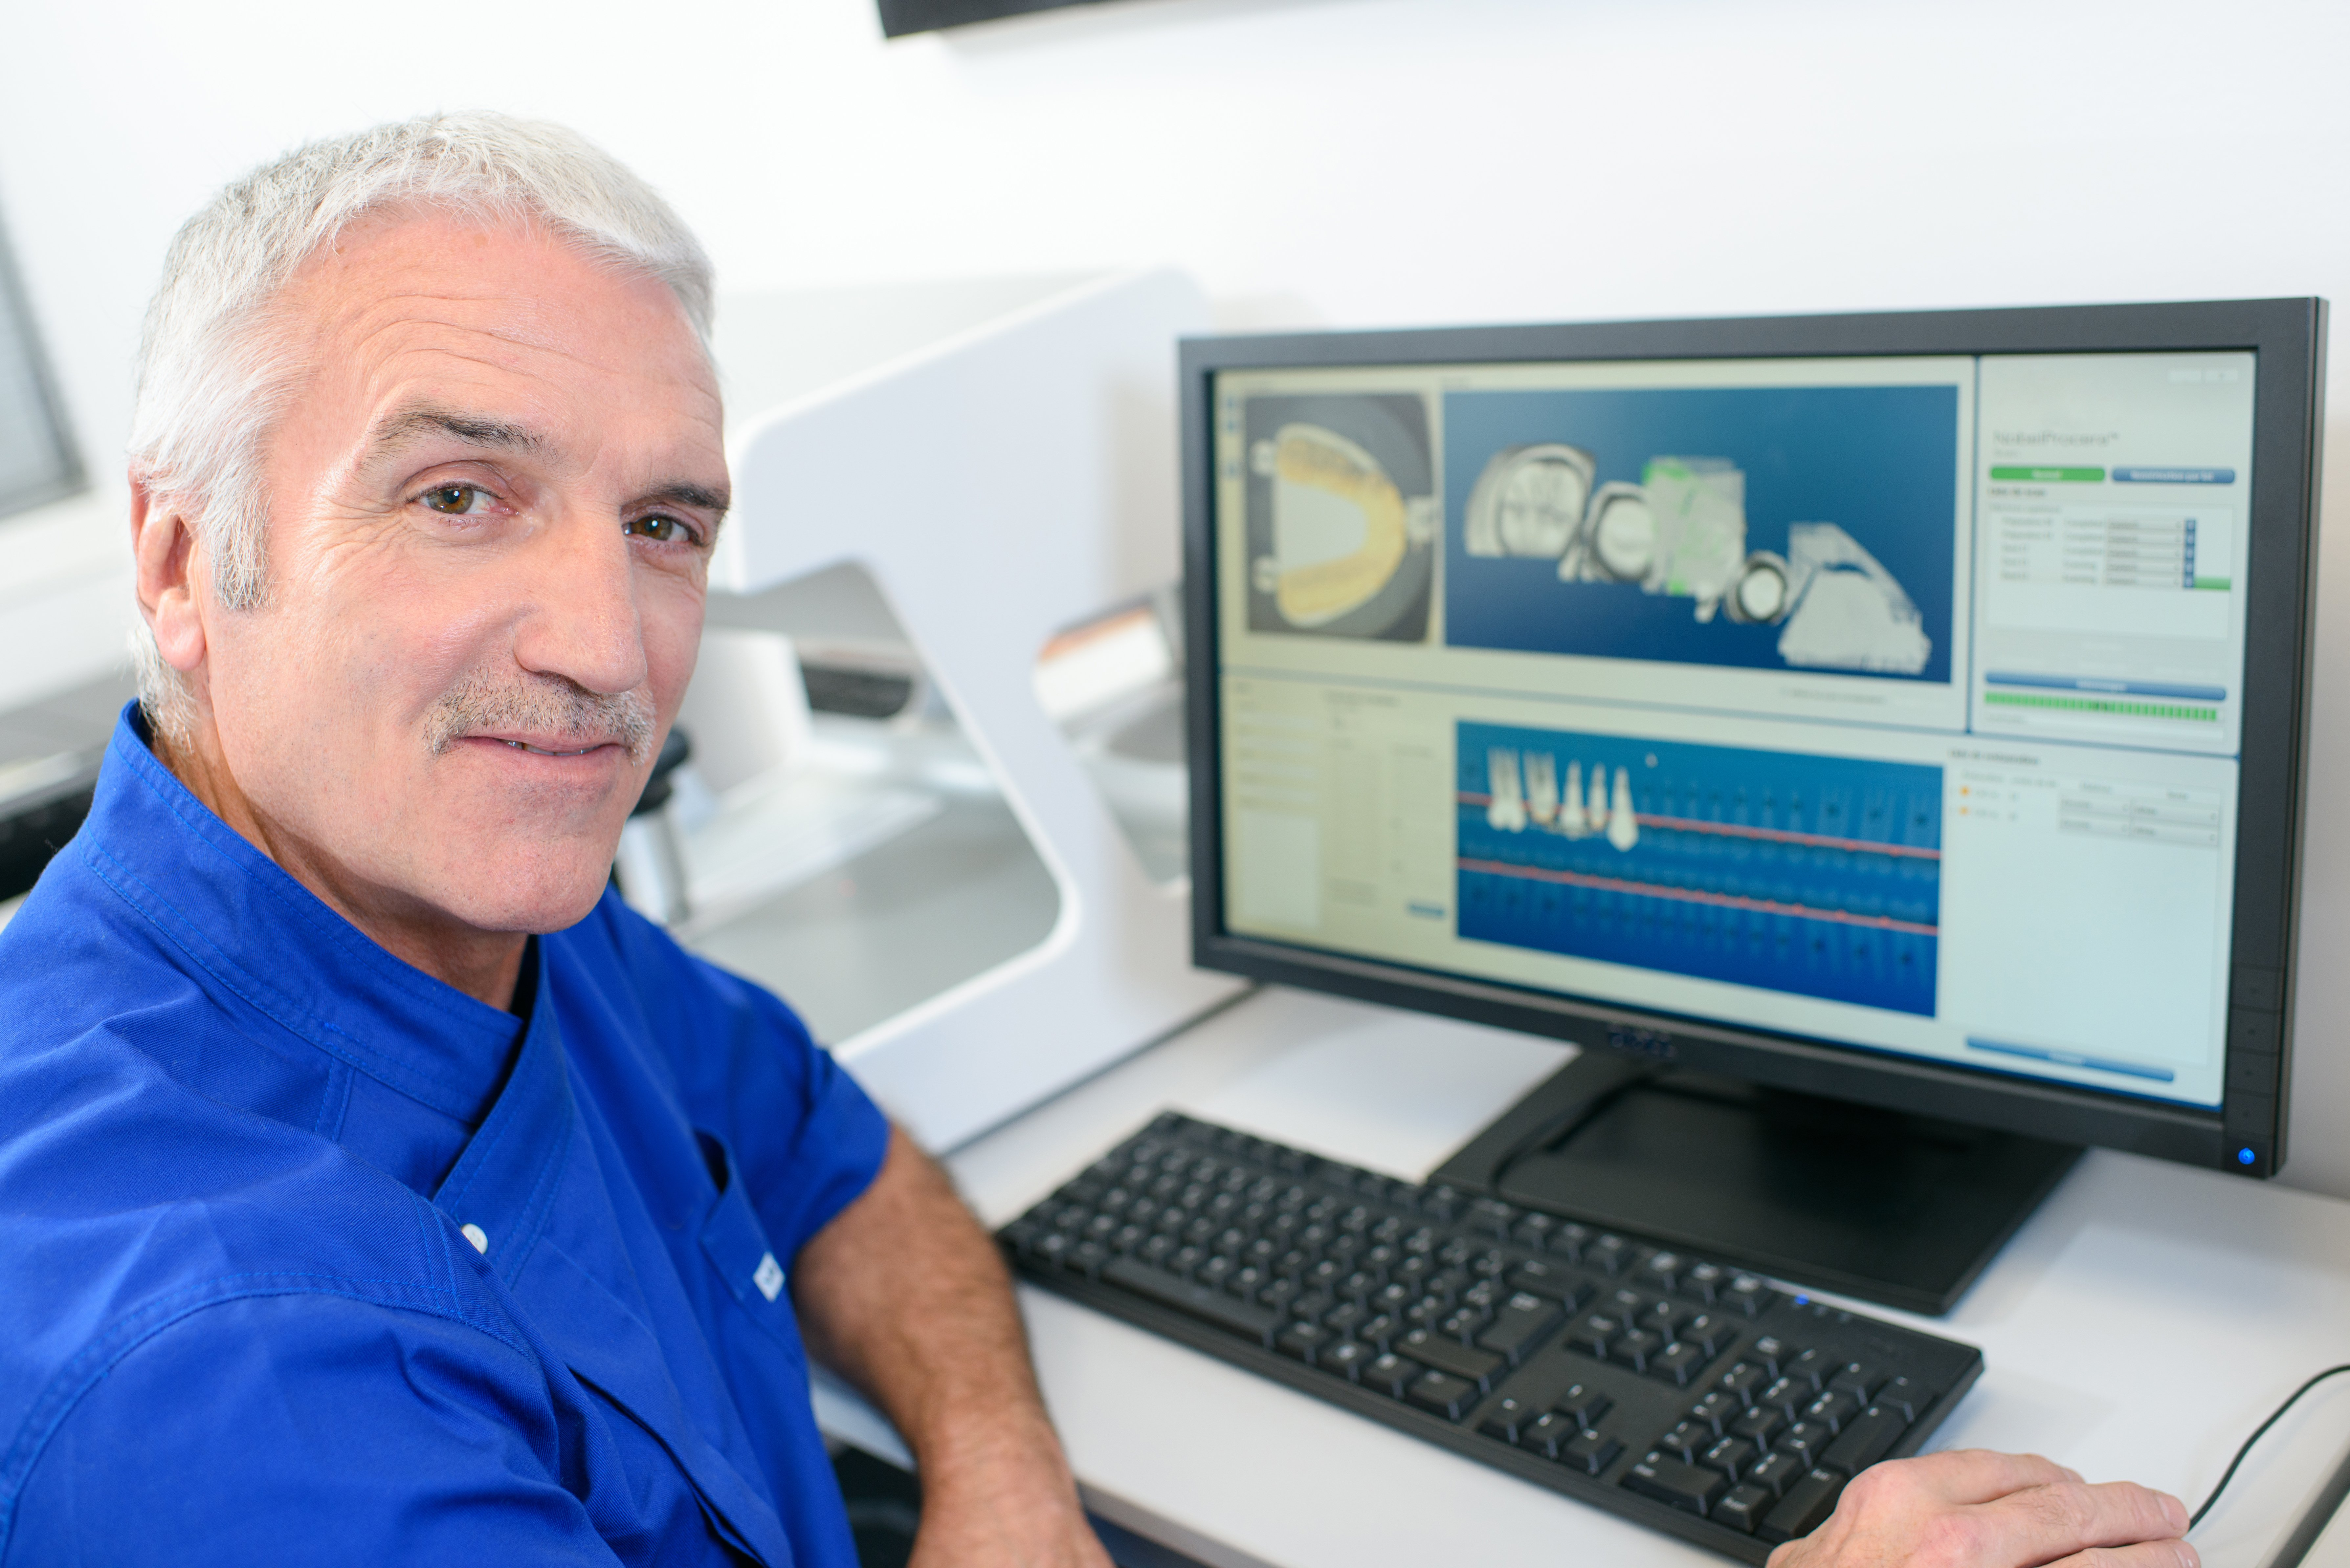 Dentist sitting in front of his computer | Photo: Shutterstock